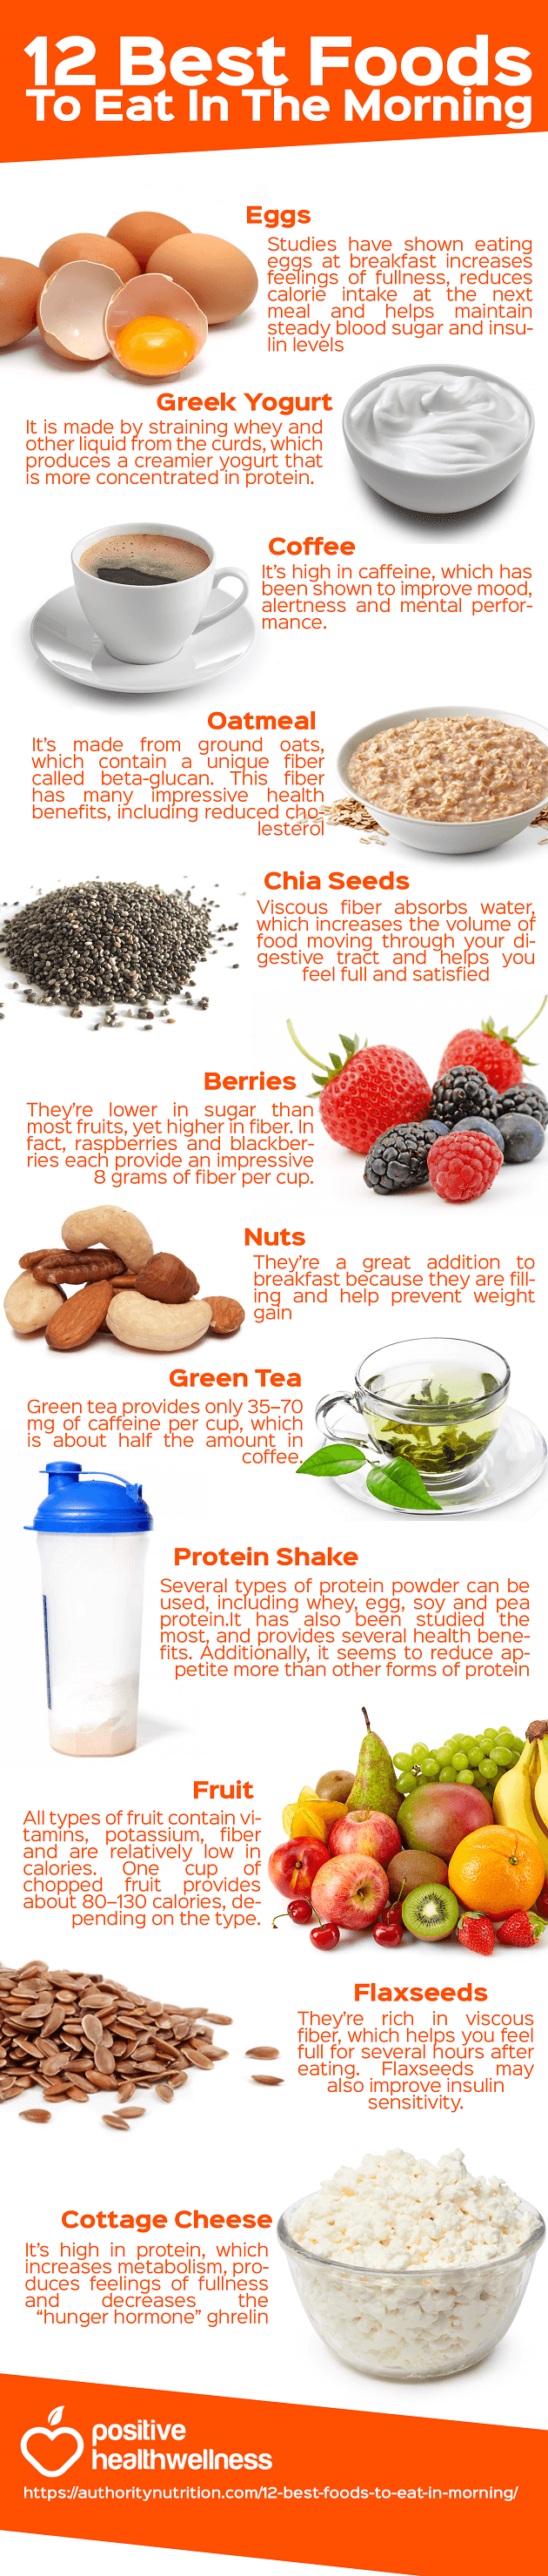 The Best Healthy Foods Recommended For Breakfast Infographic